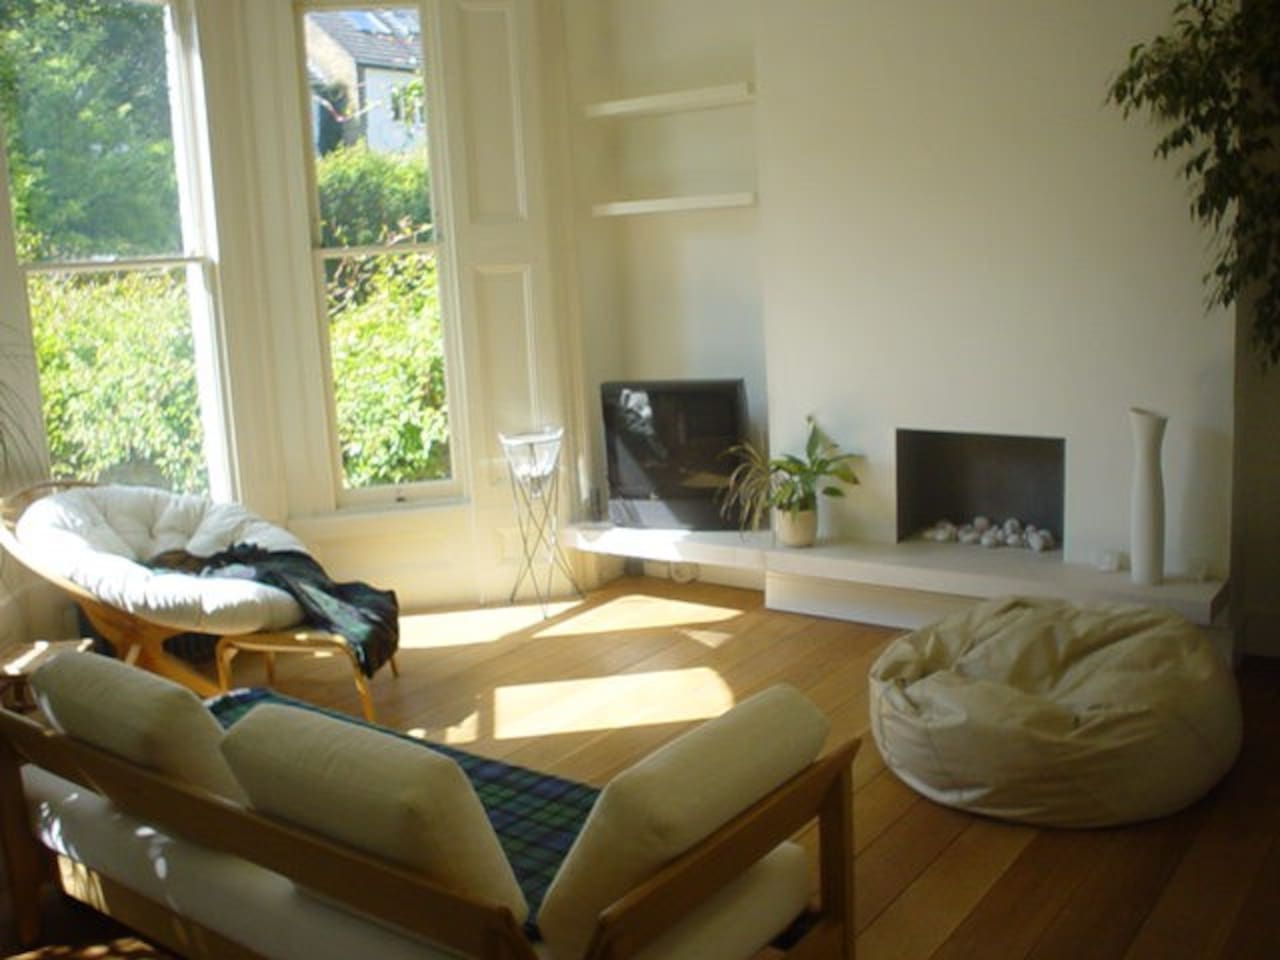 Living Room - with TV and decorative gas fire